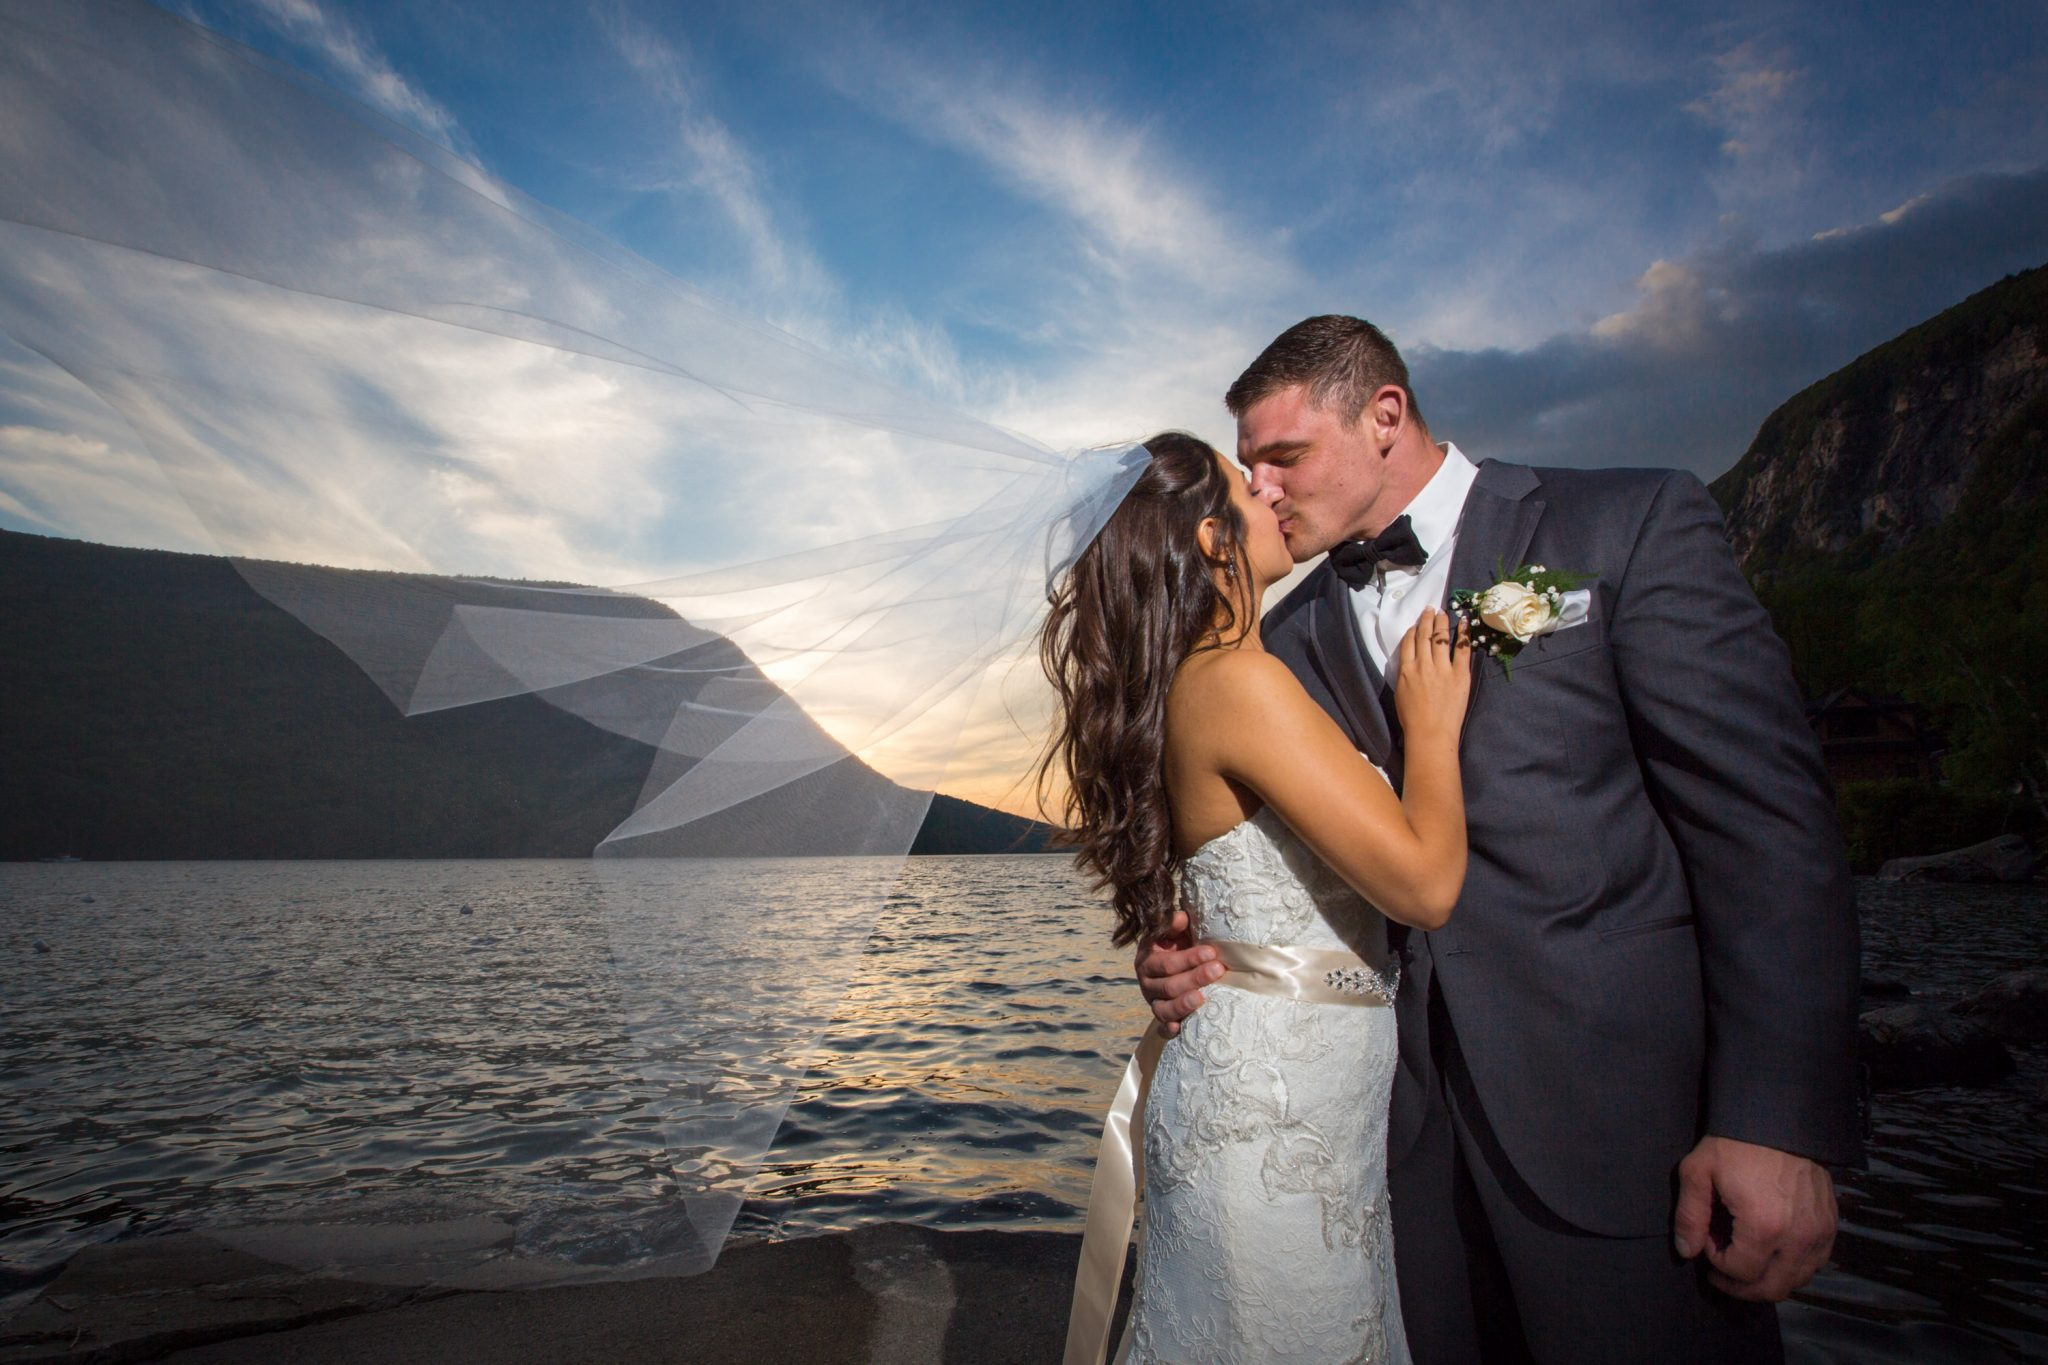 Candid kiss at sunset. A wedding portrait at The Notch House on Willoughby Lake